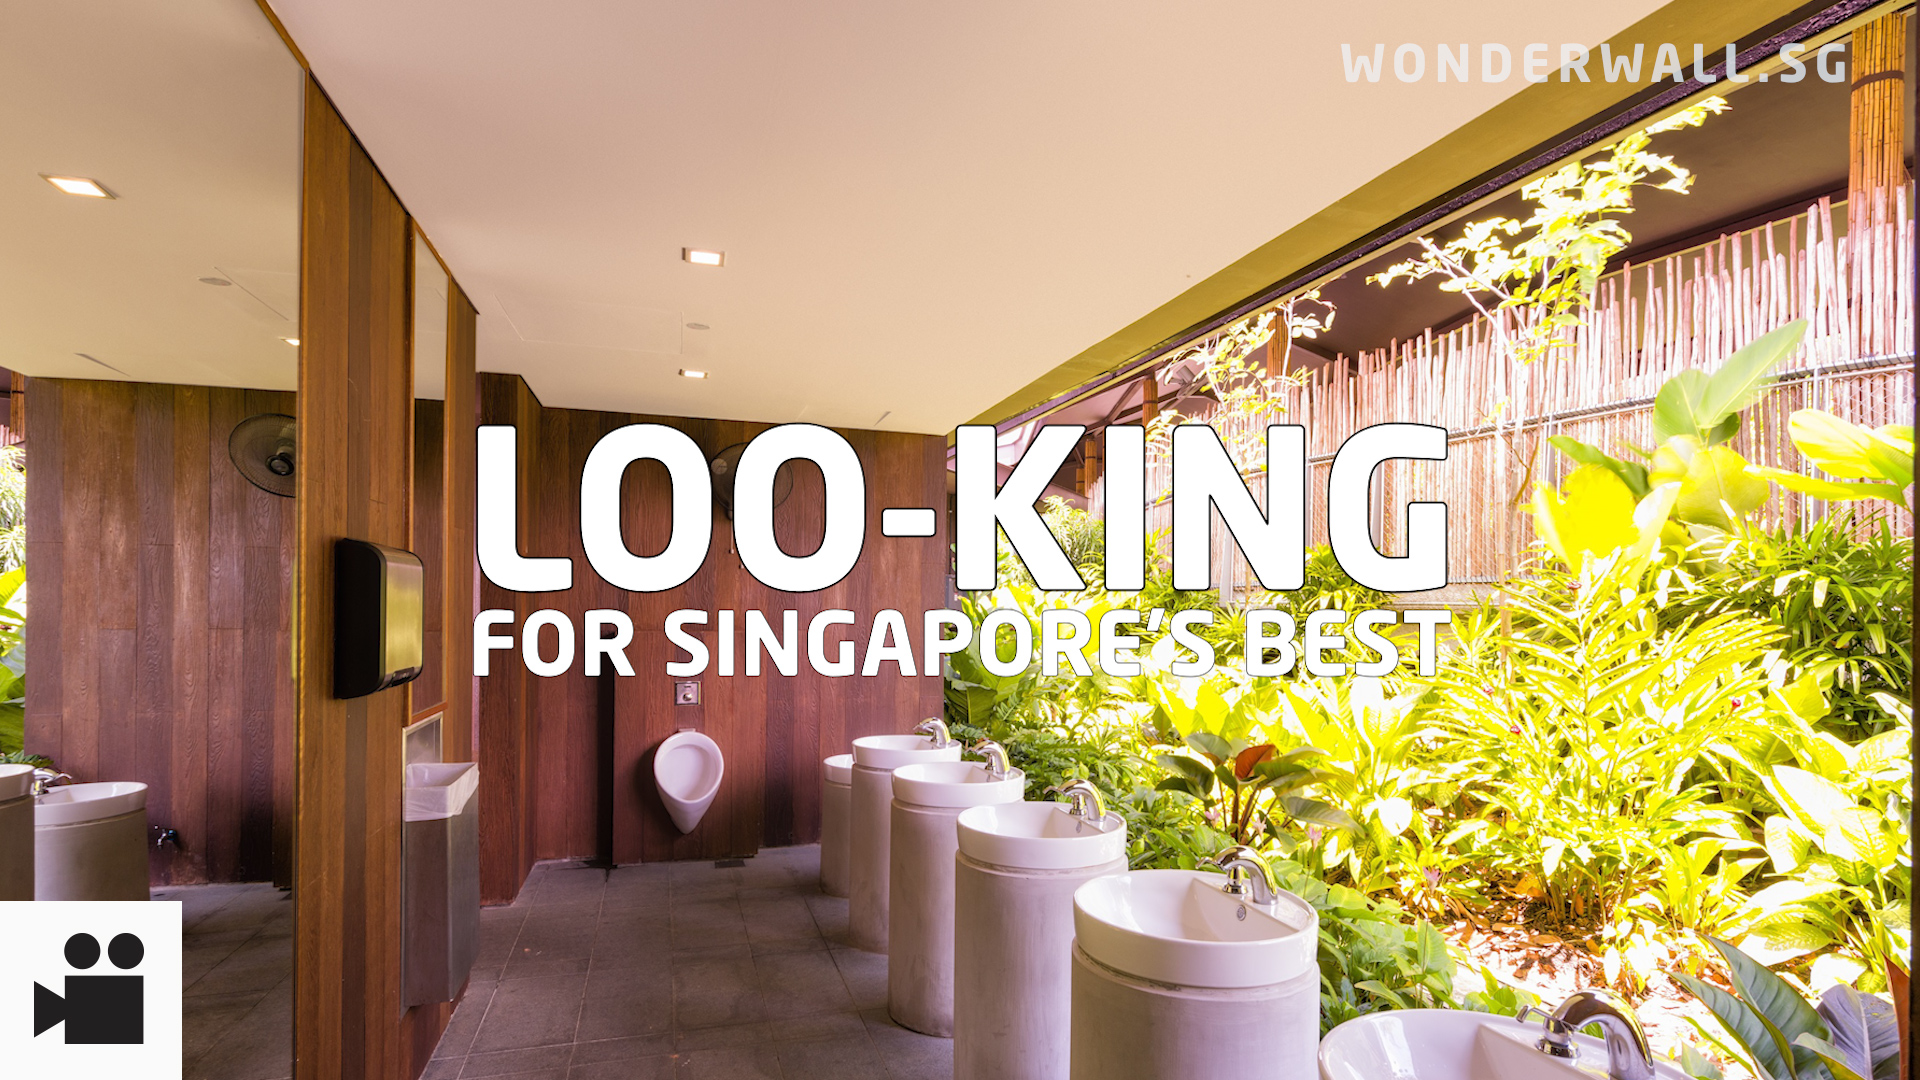 World Toilet Day: Iconic Toilets Of Singapore